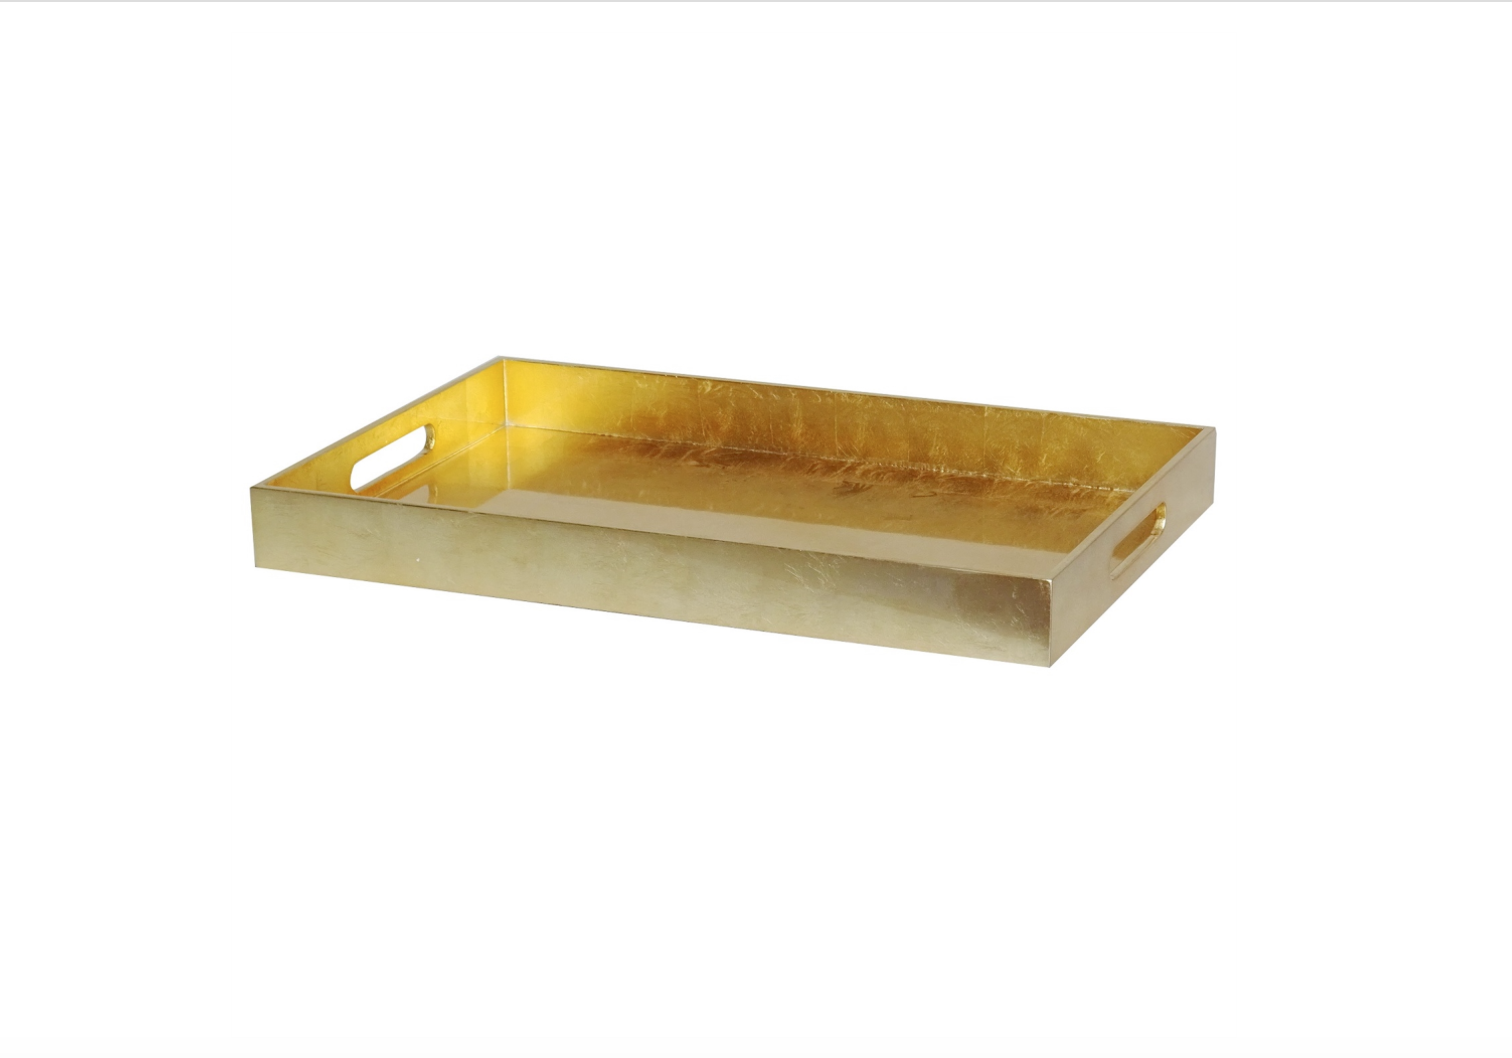 BIDKHOME Small Lacquer Rectangular Serving Tray Gold Leaf